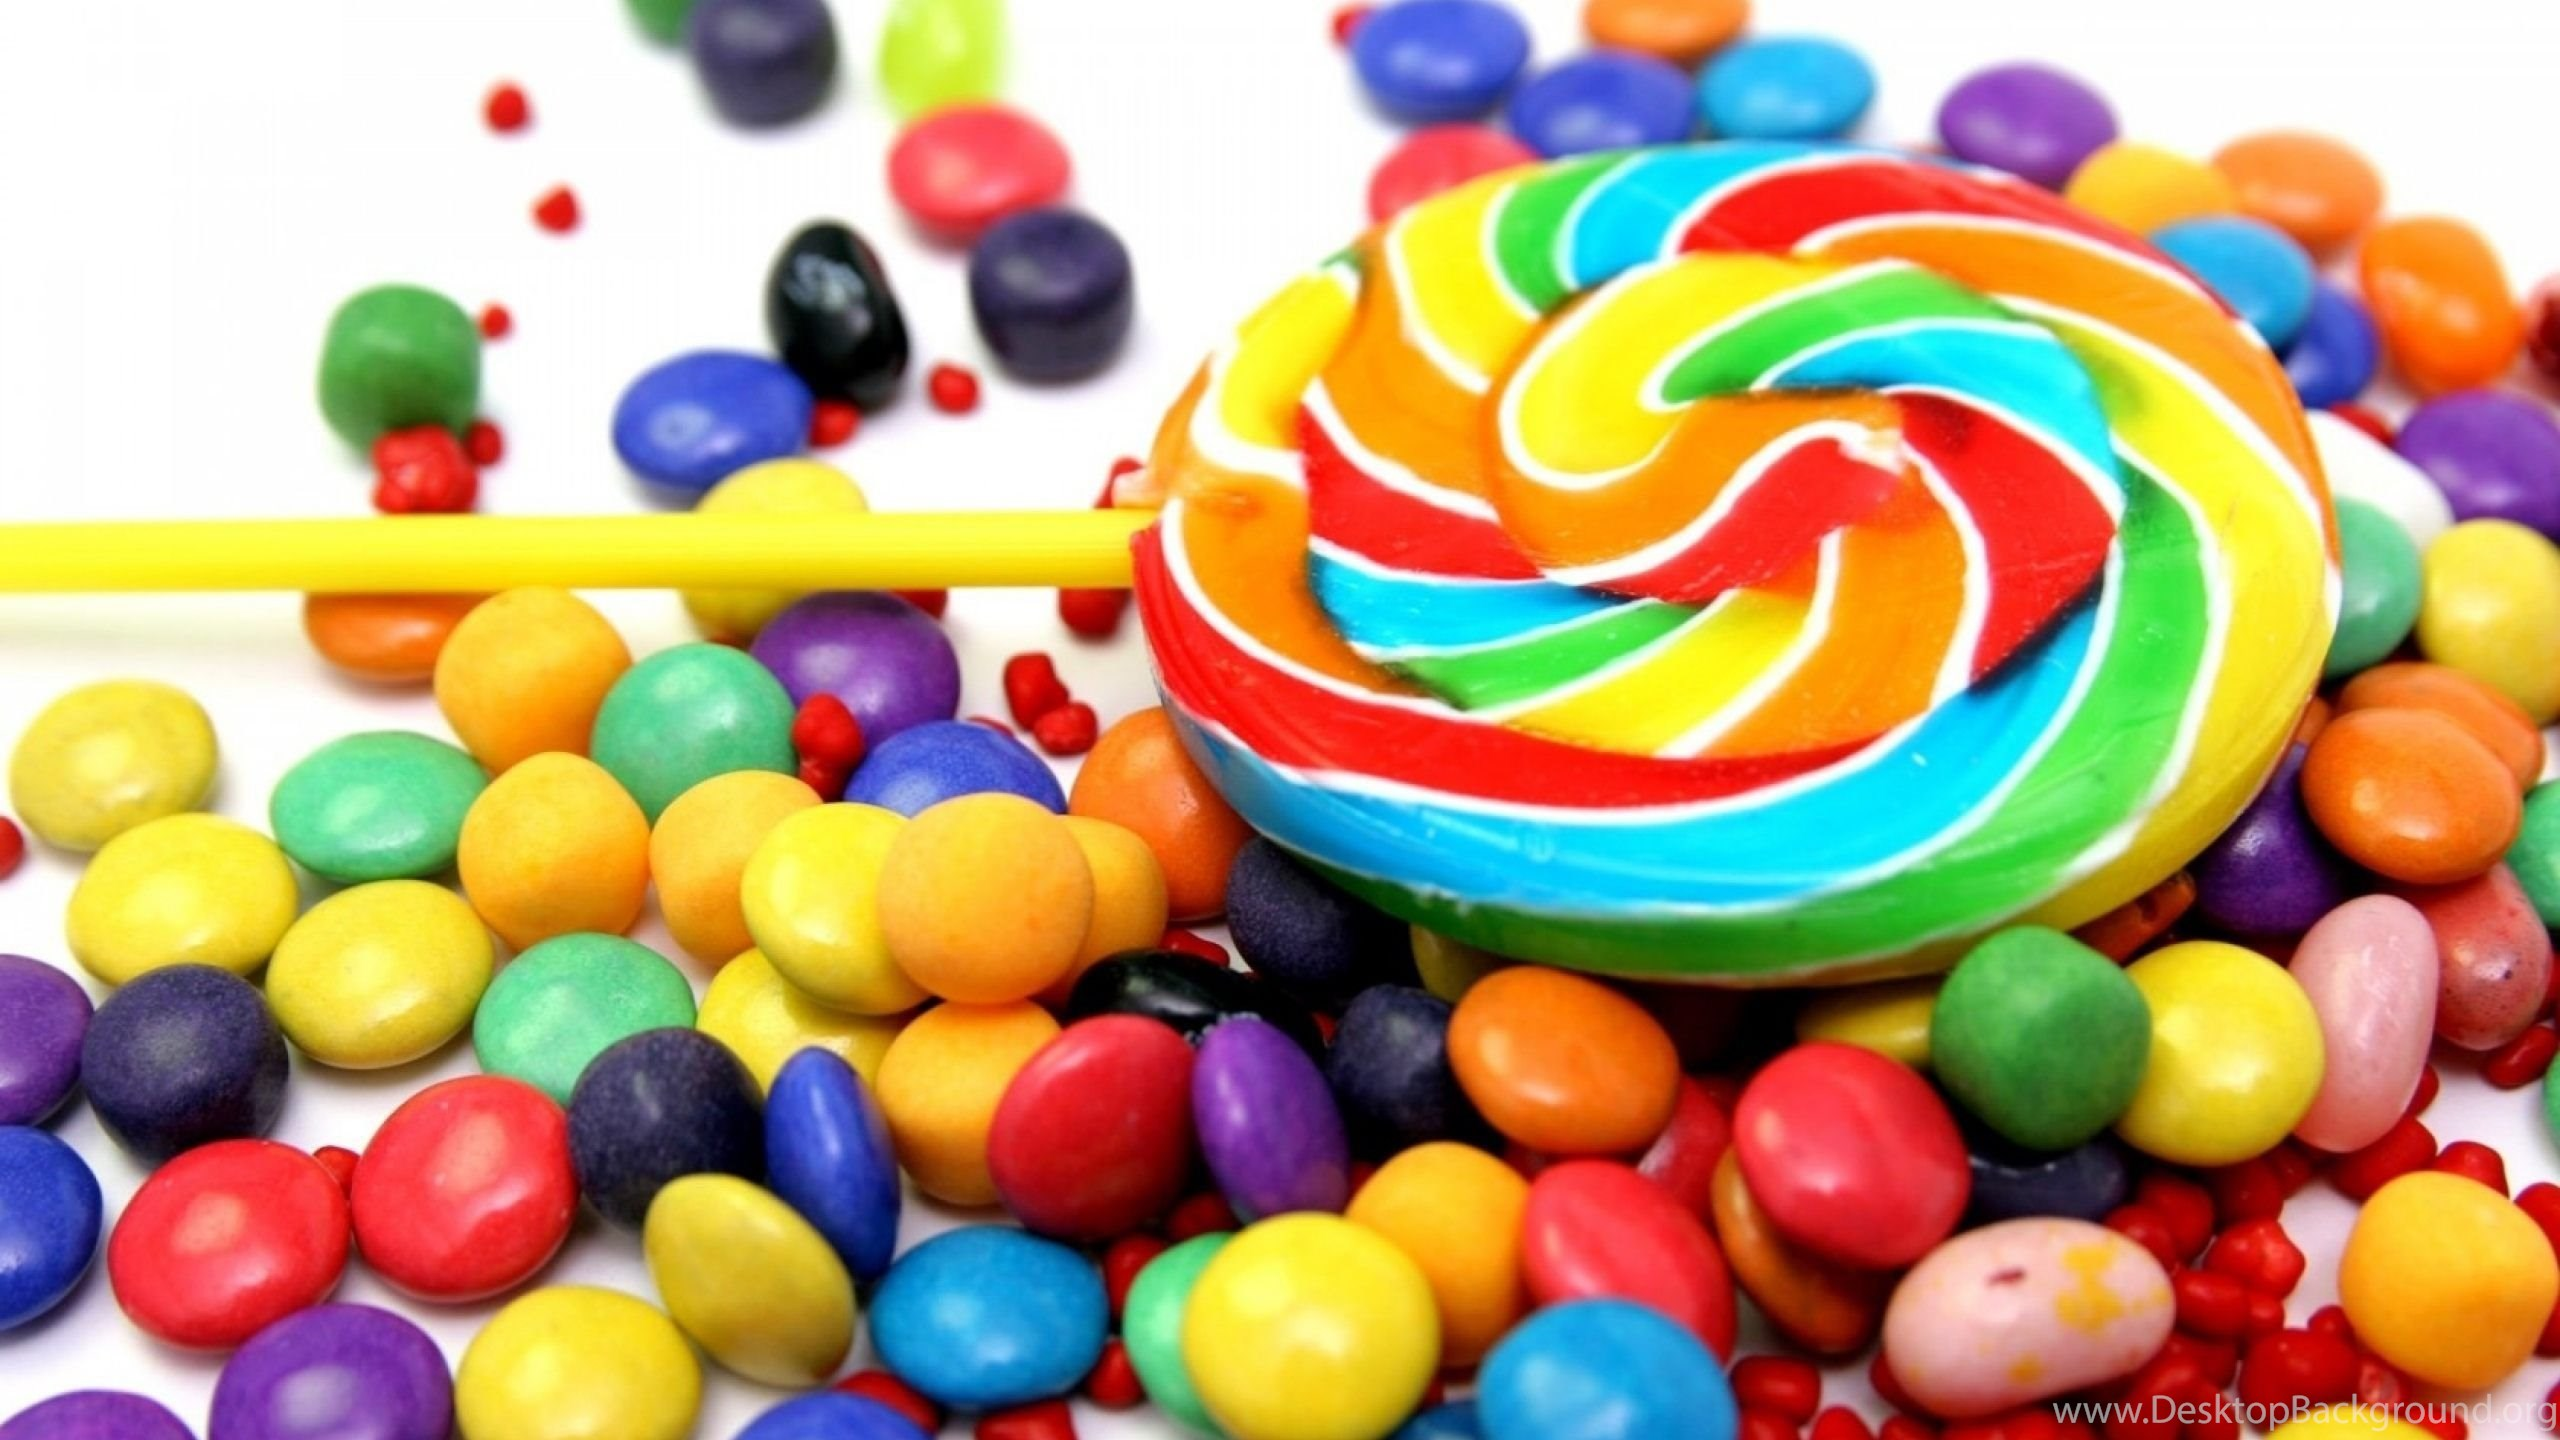 Colorful Food Wallpaper Free Download: Colorful Candies Wallpapers HD Download Of Food Candy